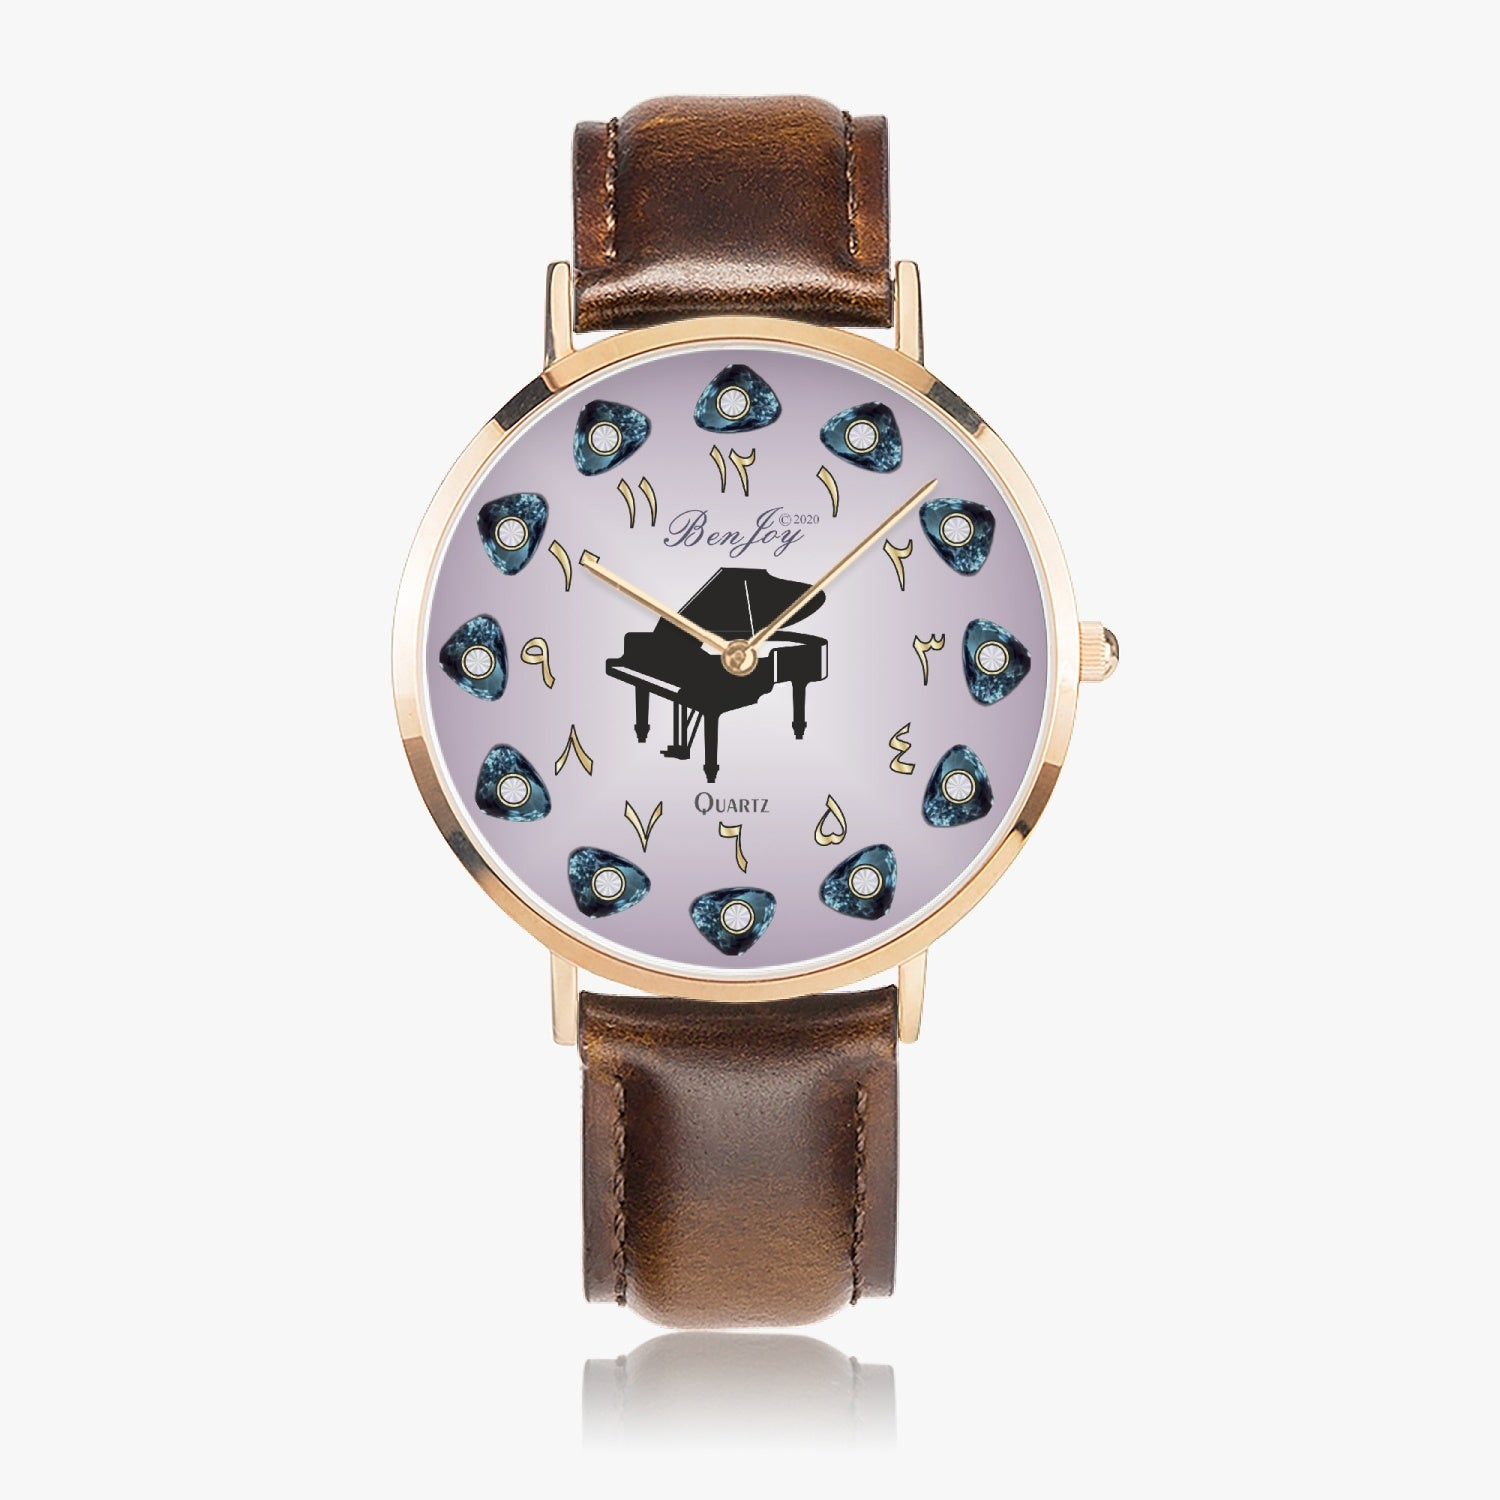 Arabic Piano Ultra-Thin Leather Strap Watch (Rose Gold) By BenJoy